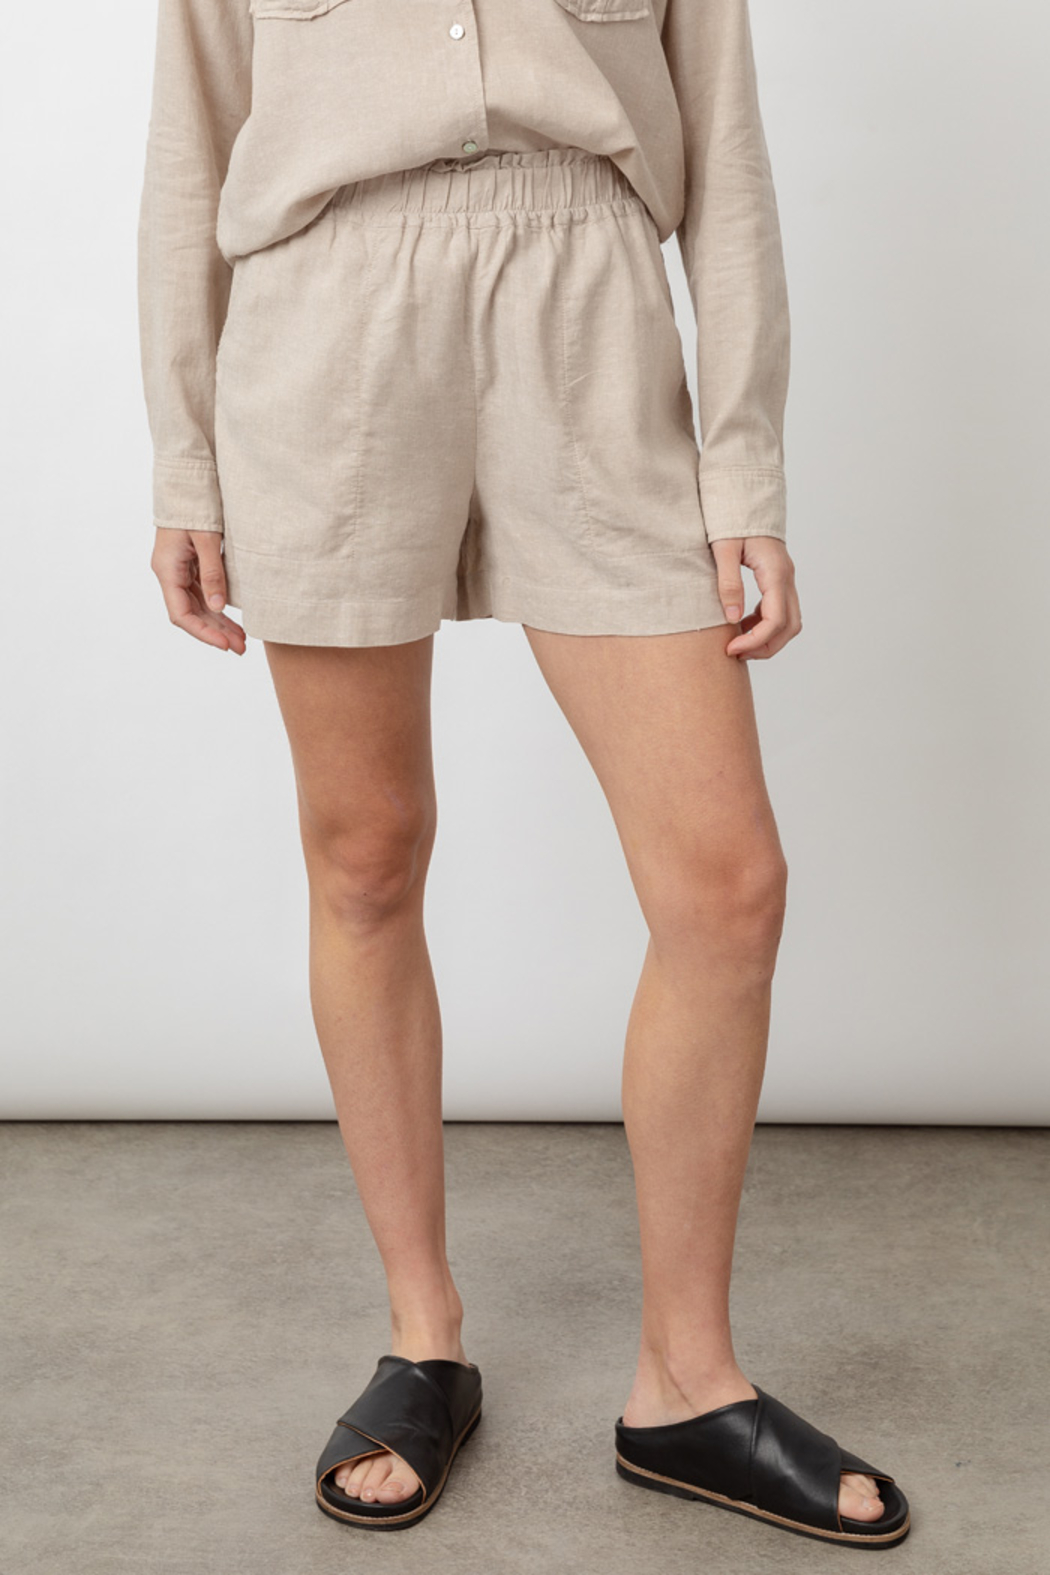 Rails Clothing LEIGHTON LINEN SHORT - Main Image